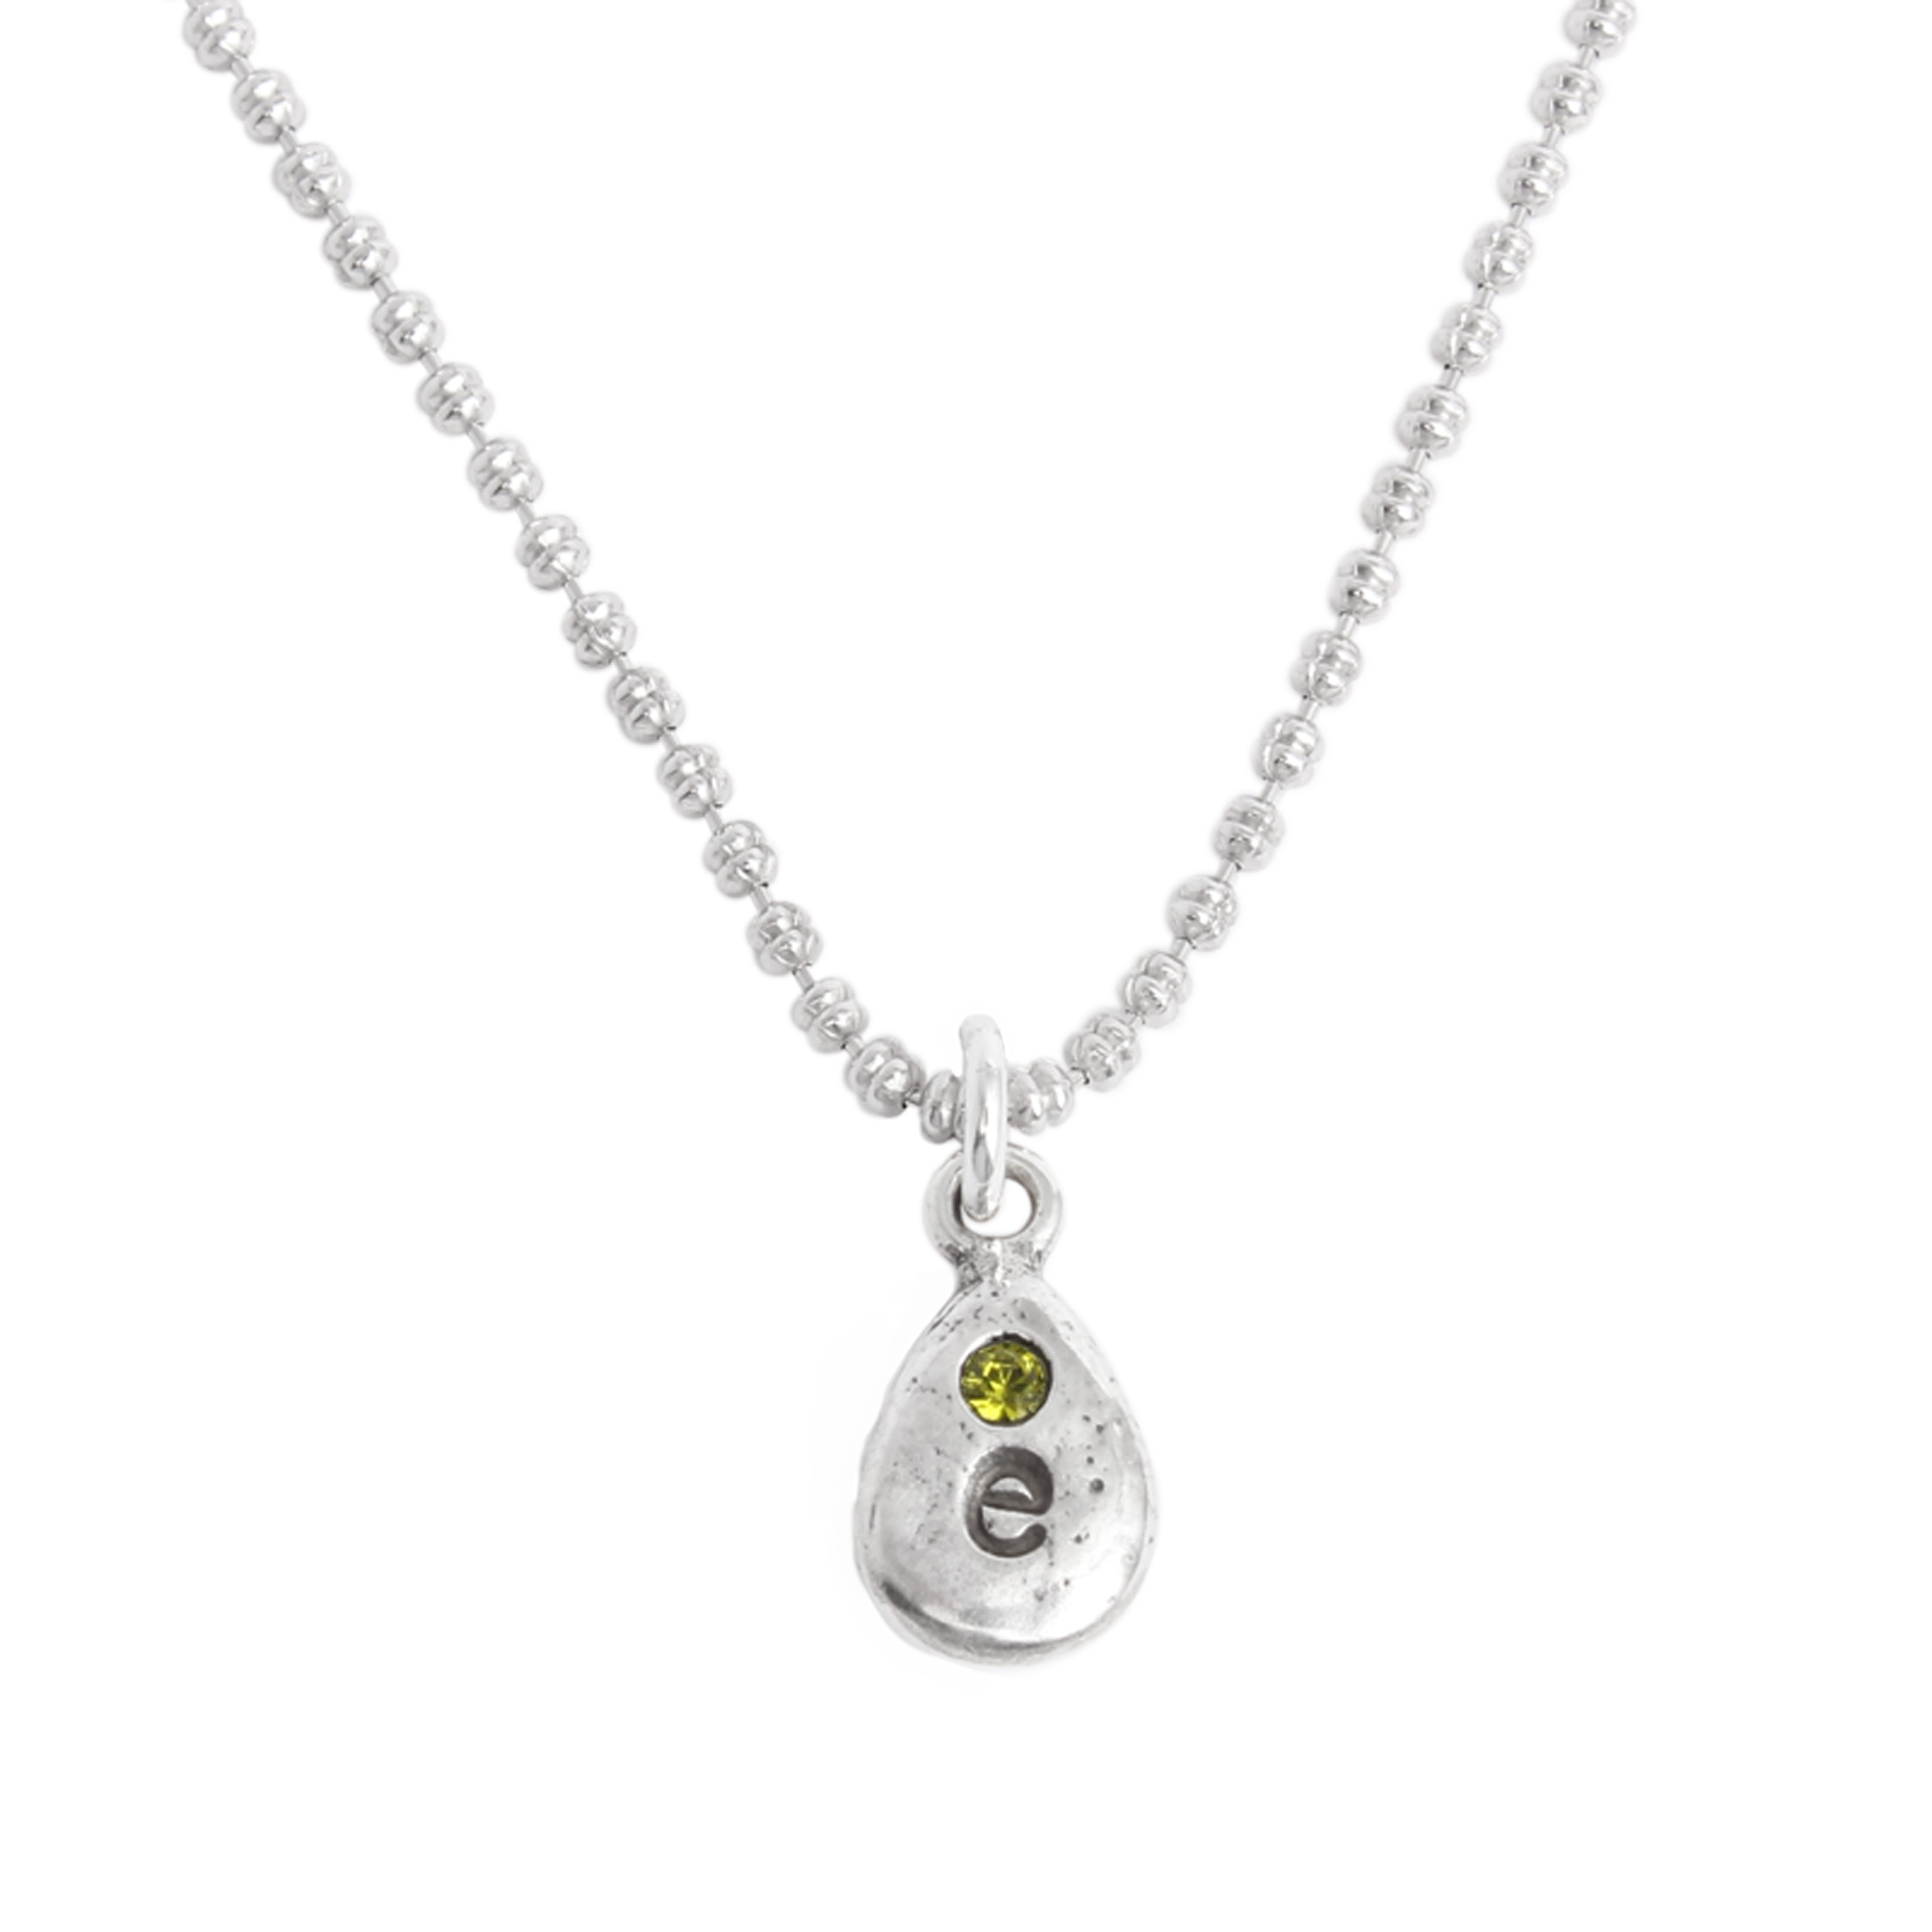 Initial and Birthstone charm necklace for mom